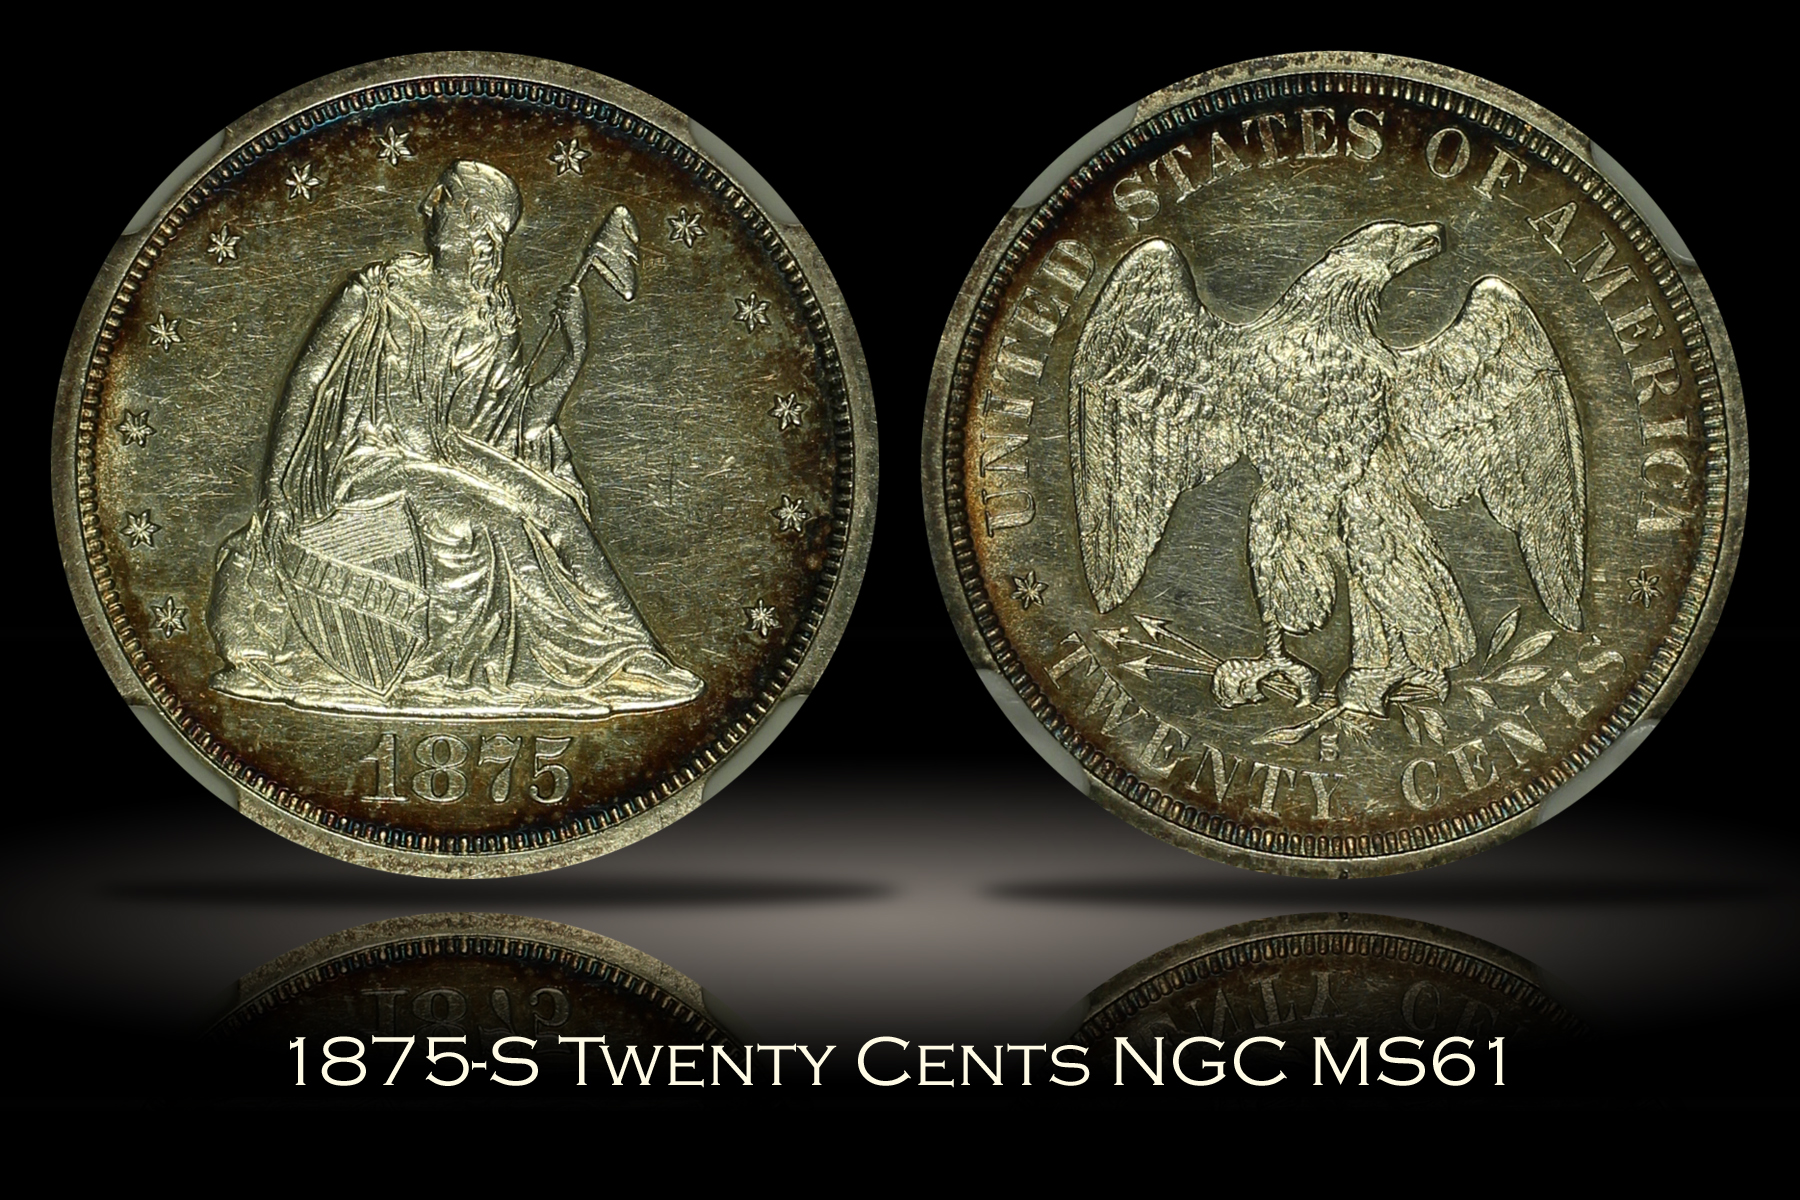 1875-S Twenty Cents NGC MS61